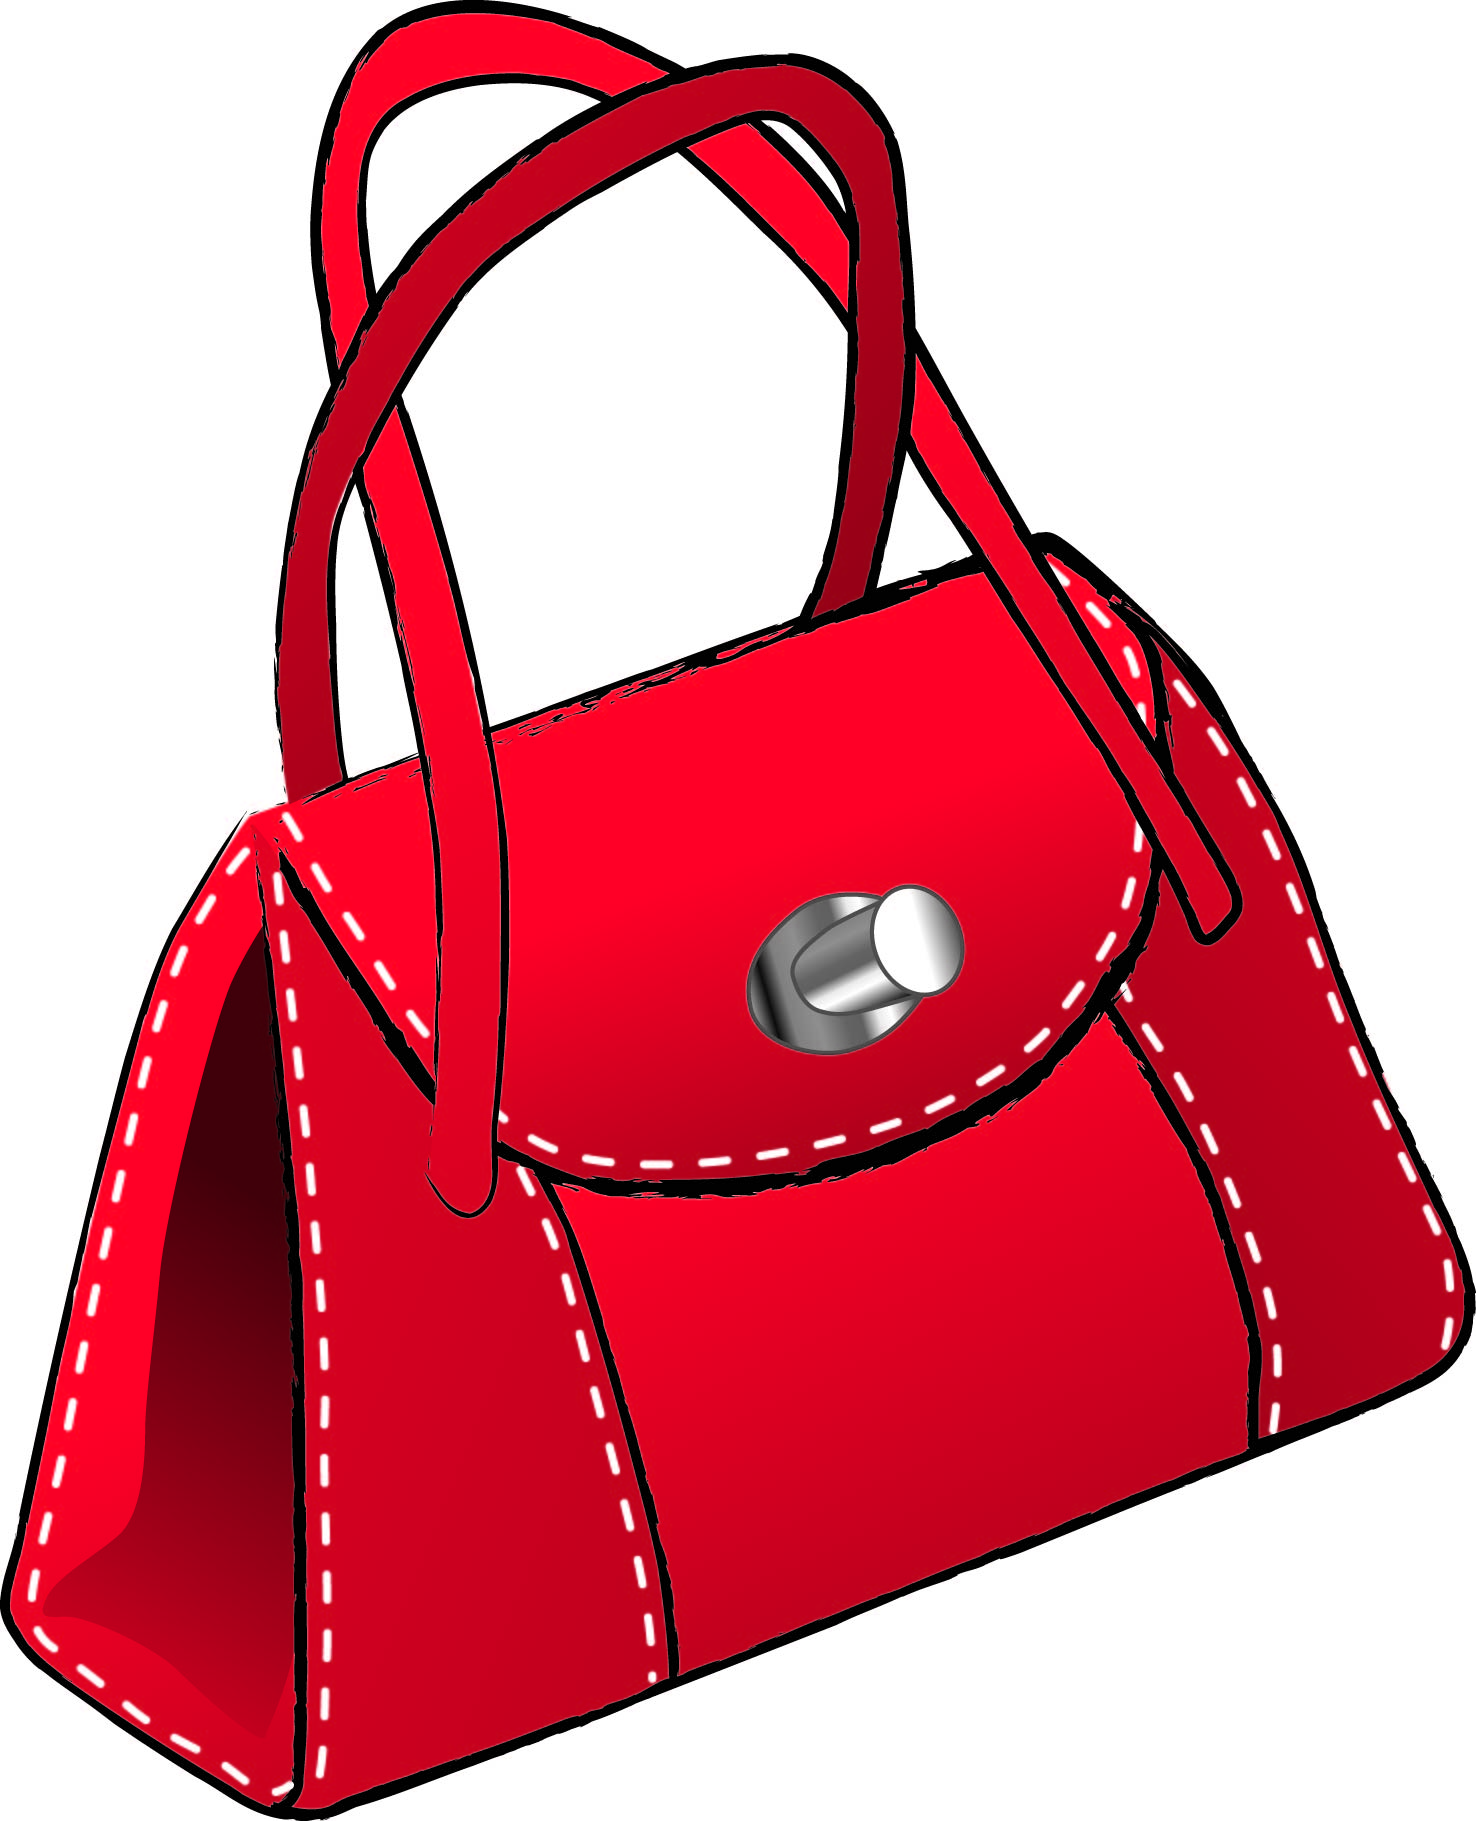 Handbag Purse Clipart - Clipart Kid